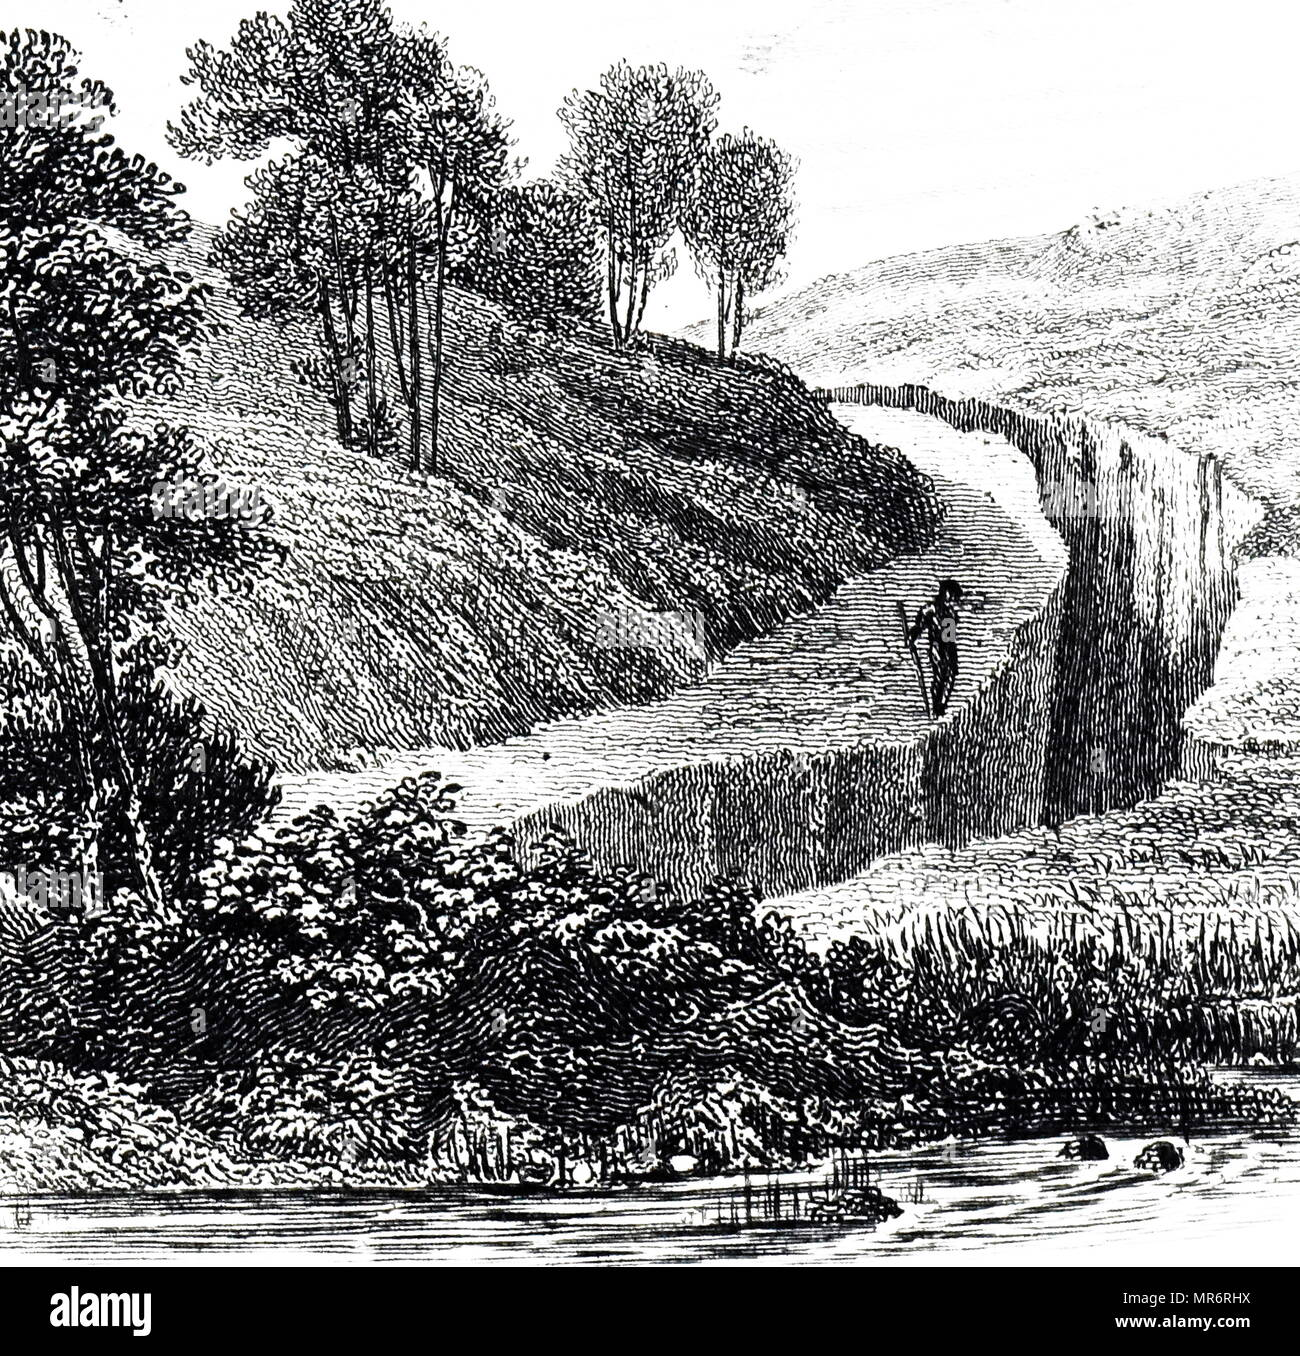 Engraving depicting a fissure in the hill of St Angelo near Soriana, caused by the 1783 Calabria earthquakes.  The earthquakes were a sequence of five strong earthquakes that hit the region of Calabria in southern Italy, the first two of which produced significant tsunamis. Dated 19th century - Stock Image